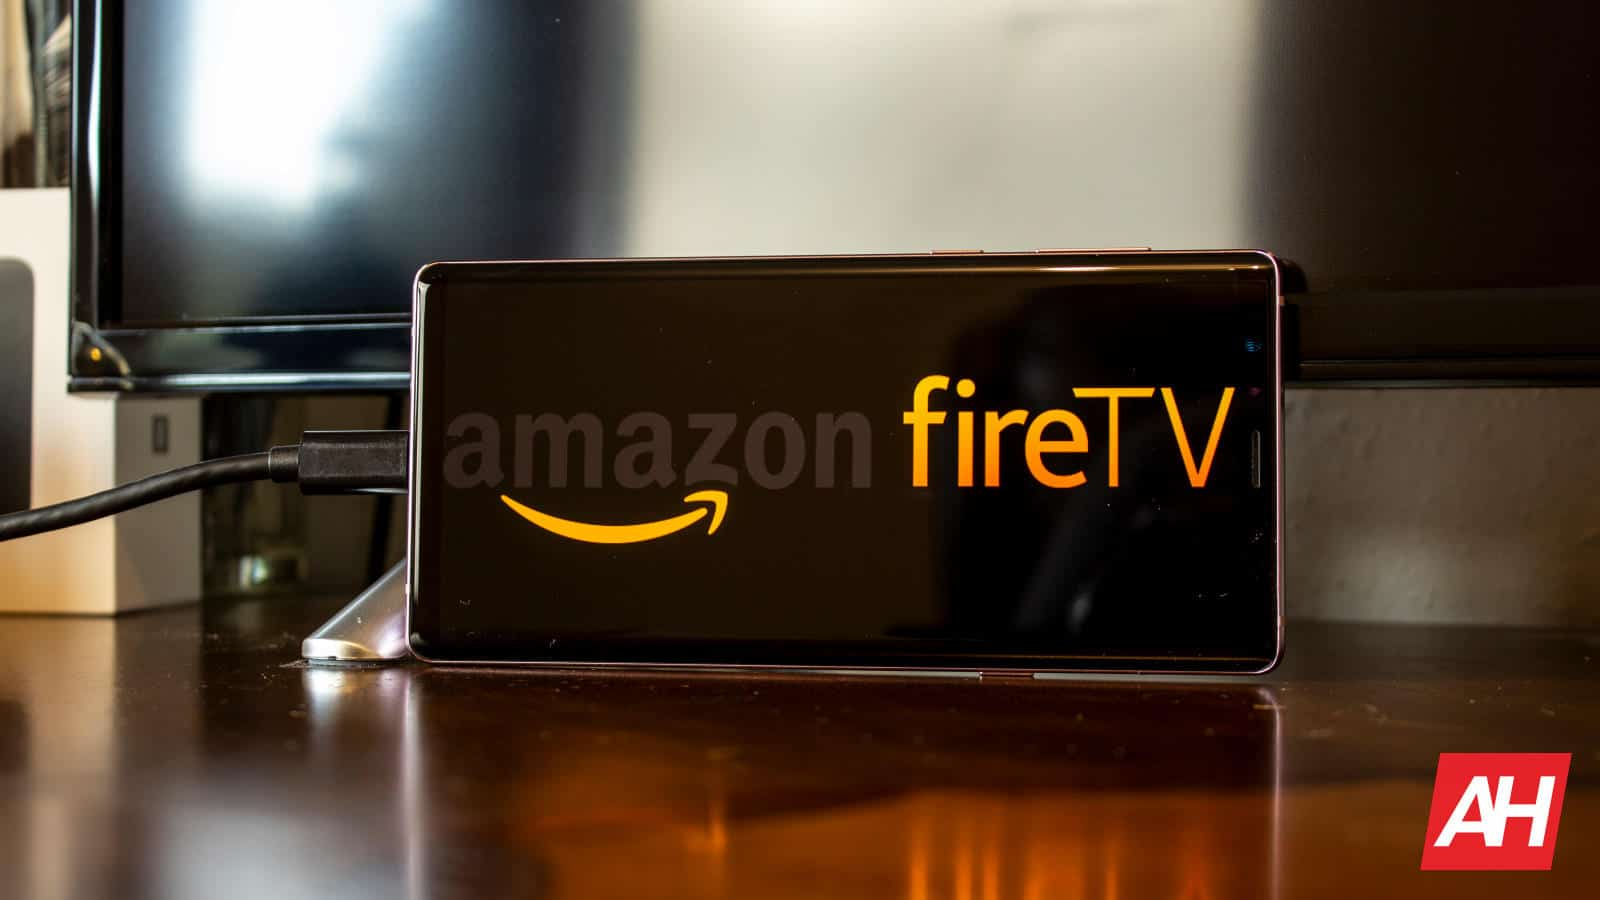 New Jeep vehicles will ship with Amazon Fire TV for infotainment